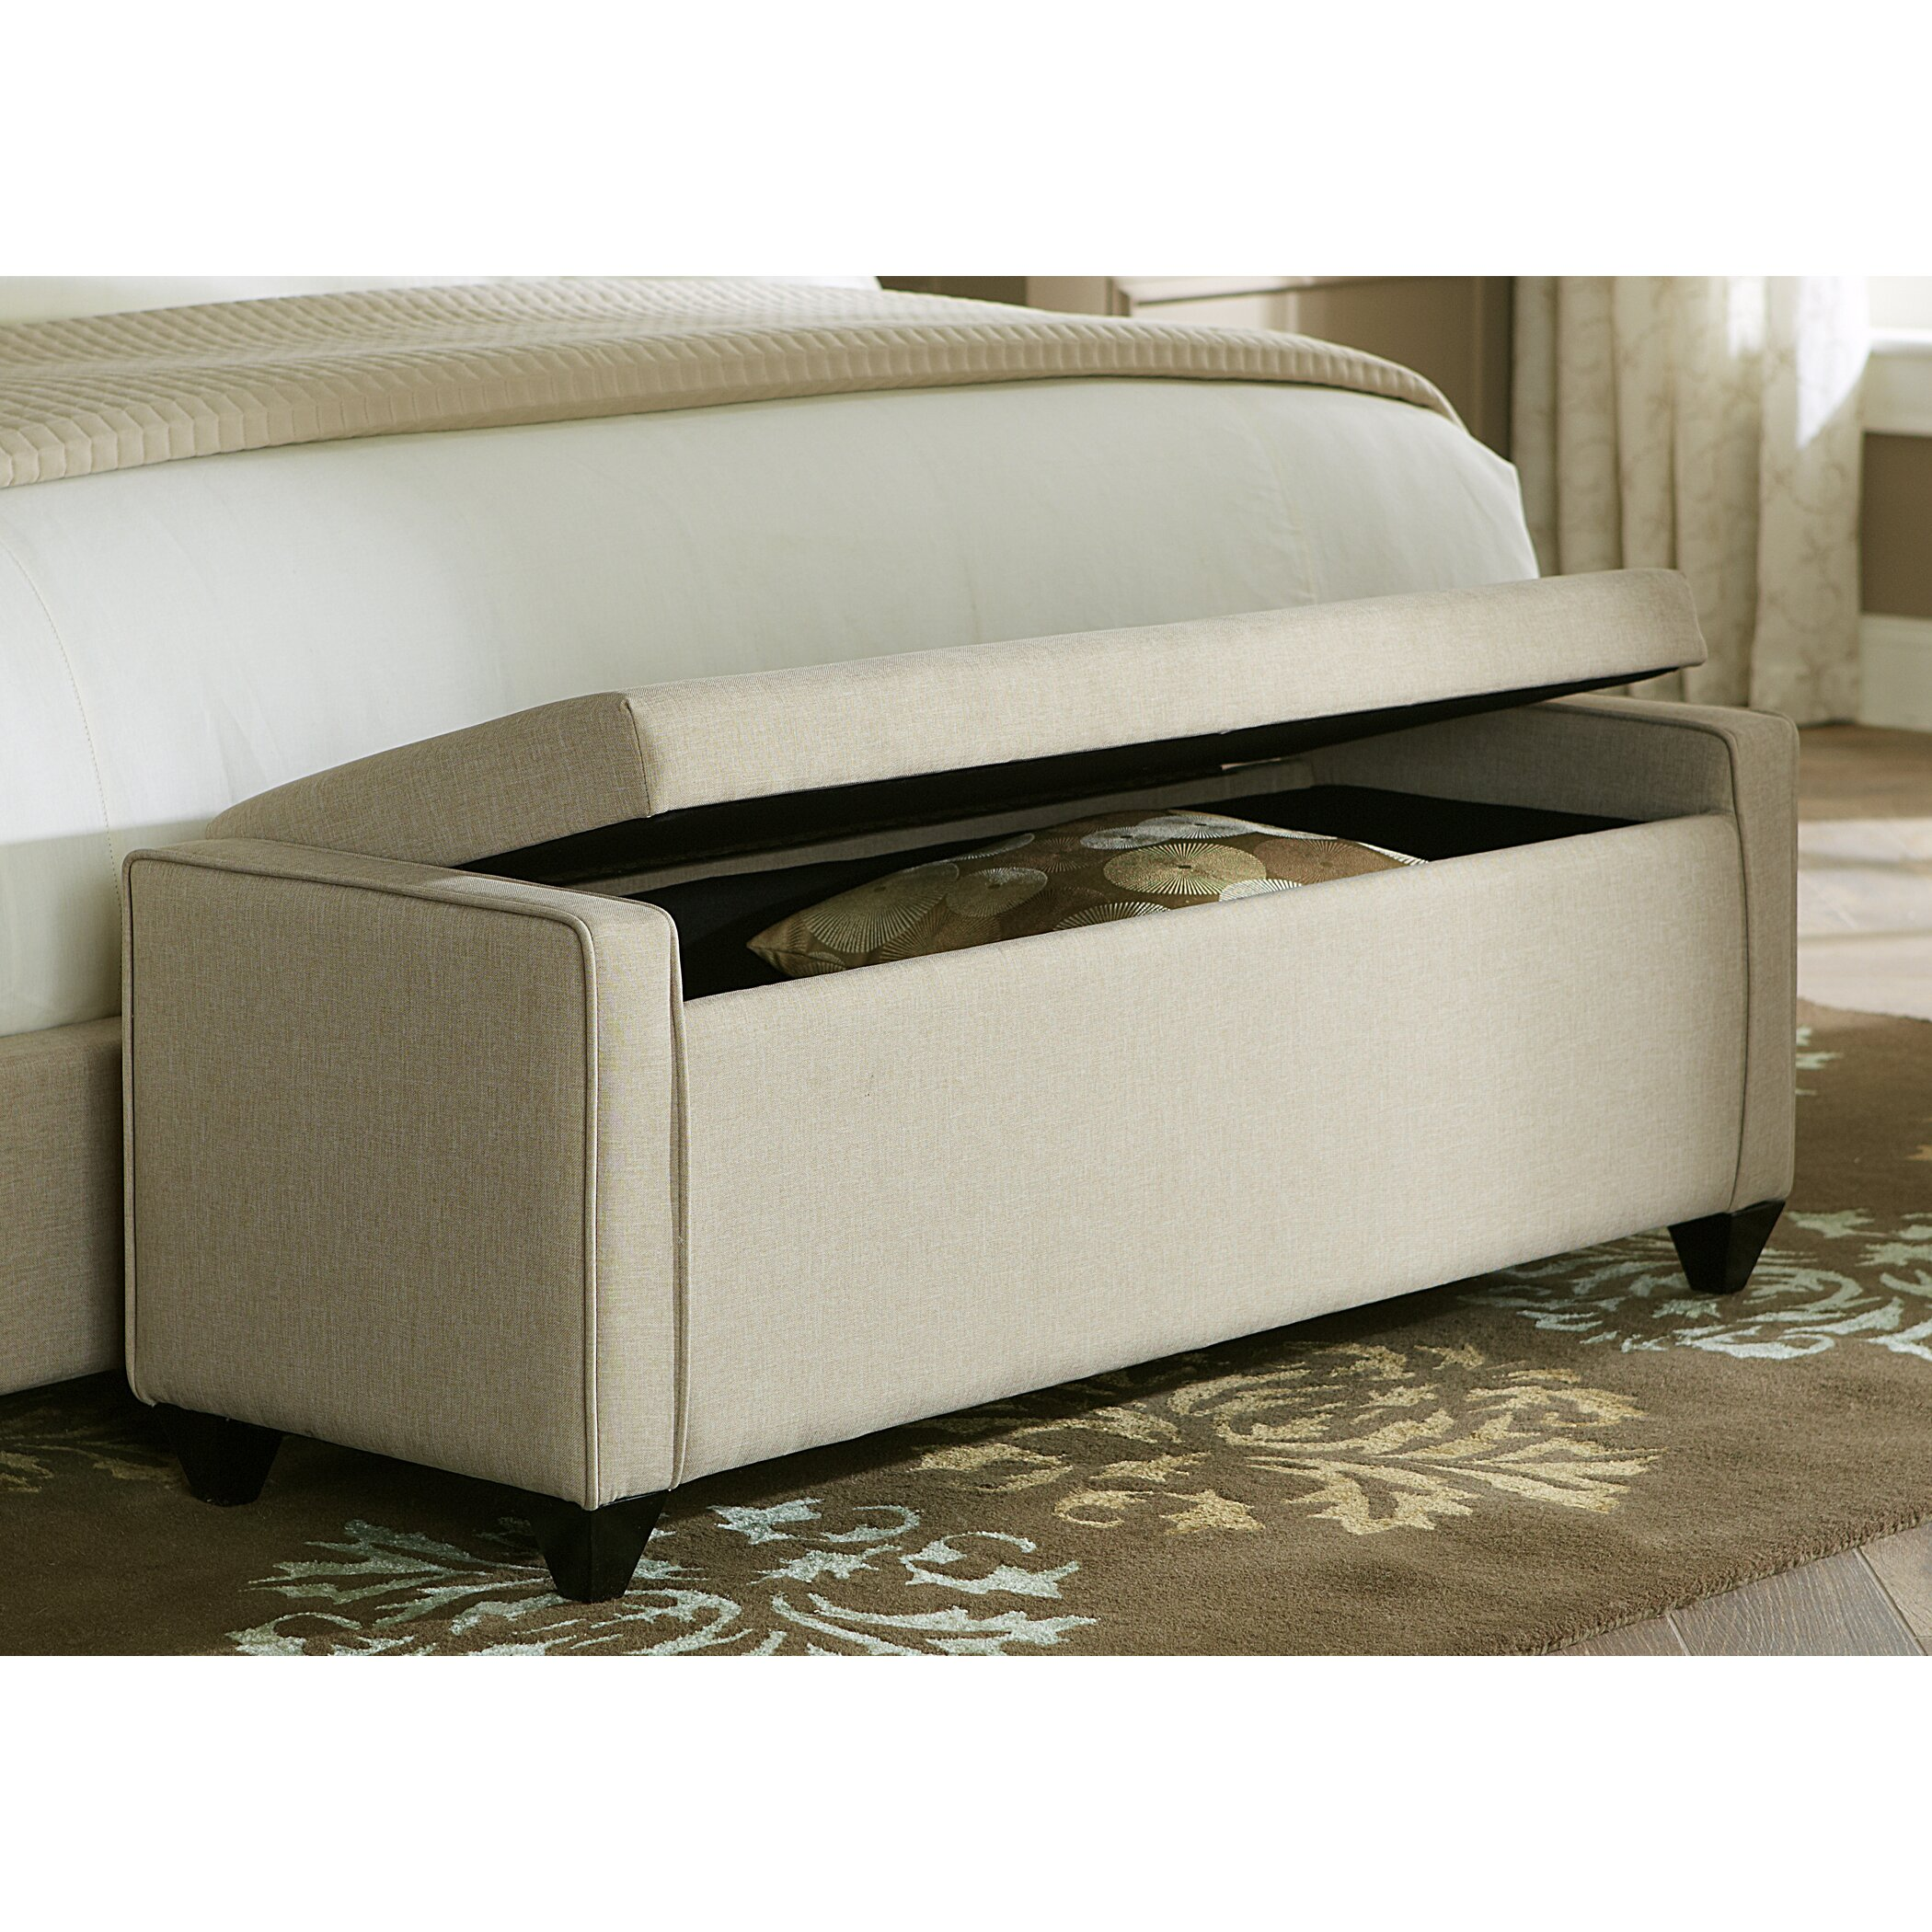 Liberty furniture upholstered storage bedroom bench for Bedroom upholstered bench